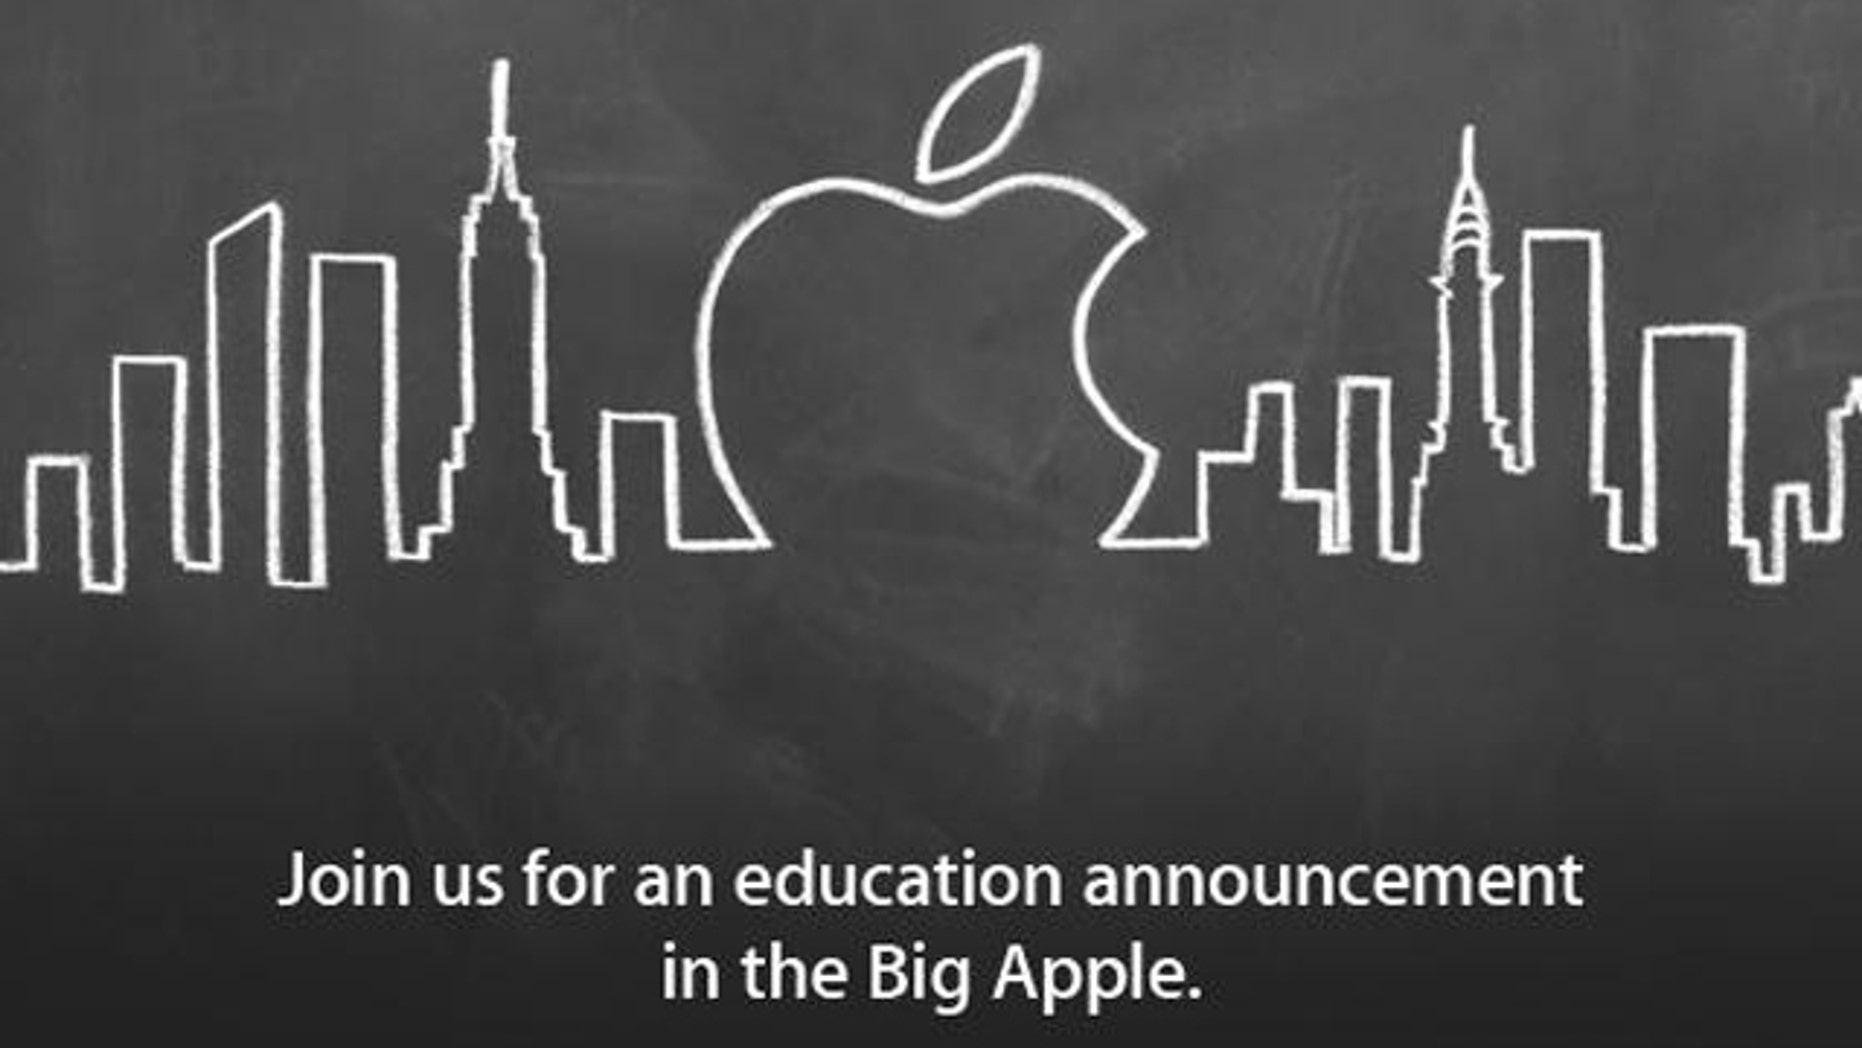 Apple plans an education-focused press event for Thursday, Jan. 19 -- an event many are speculating Apple will use to unveil specialized ebook authoring tools.